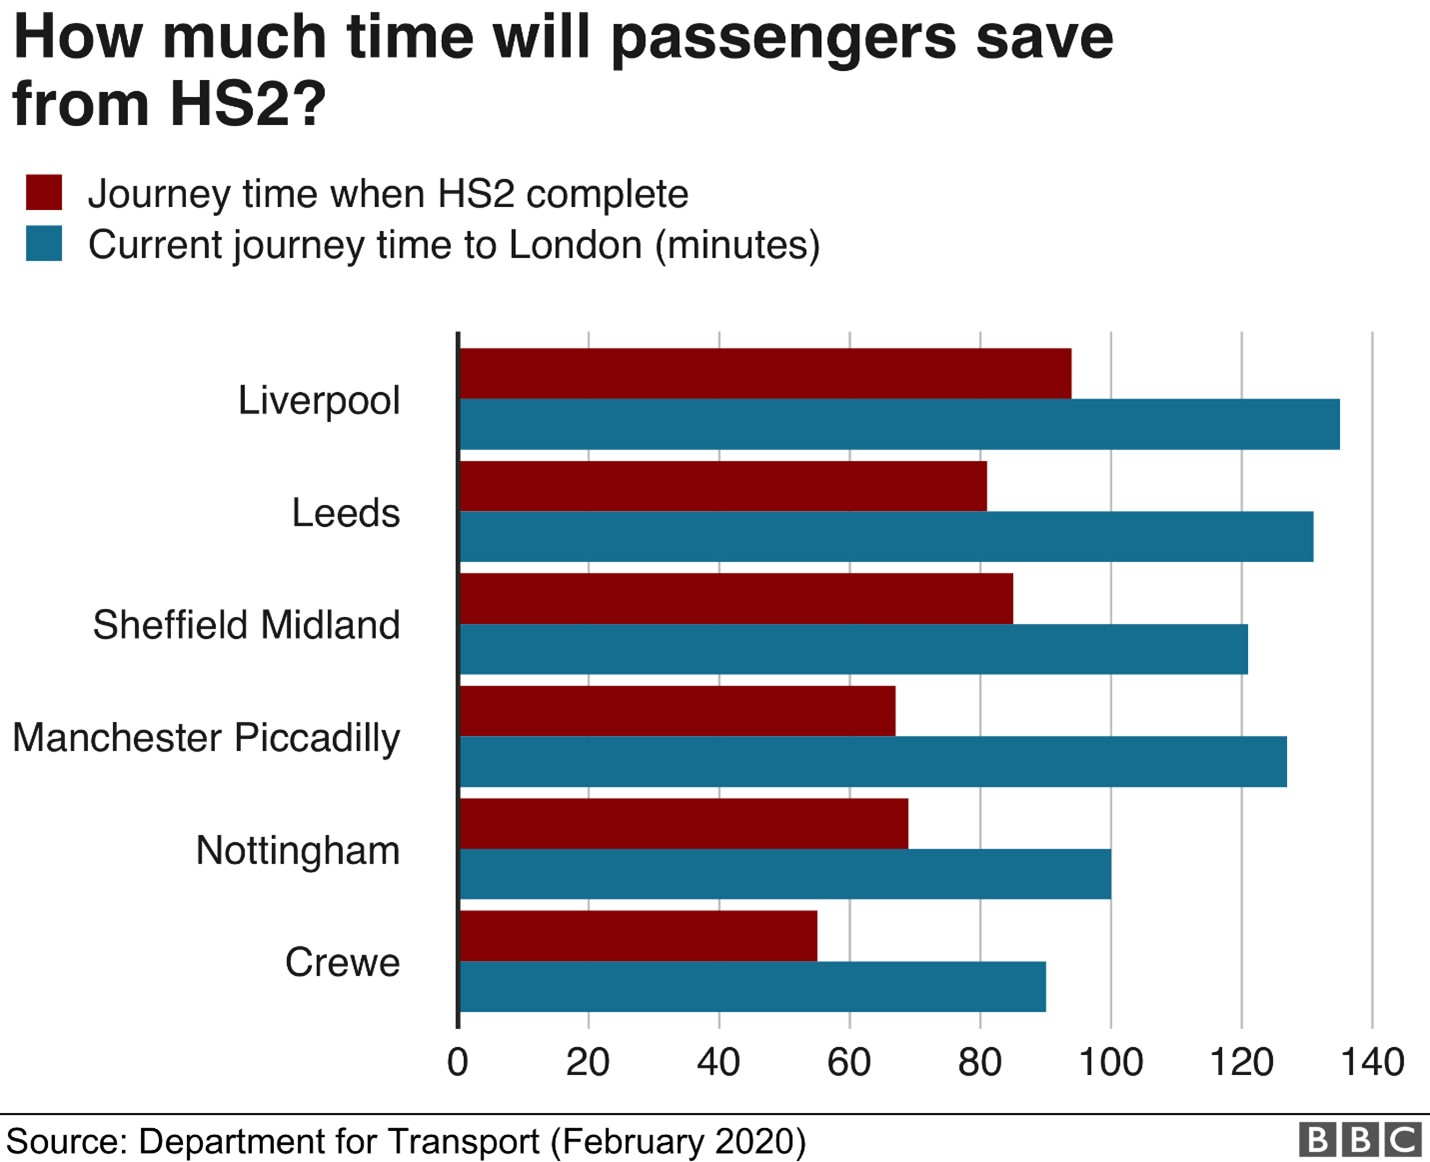 Journey time savings by HS2